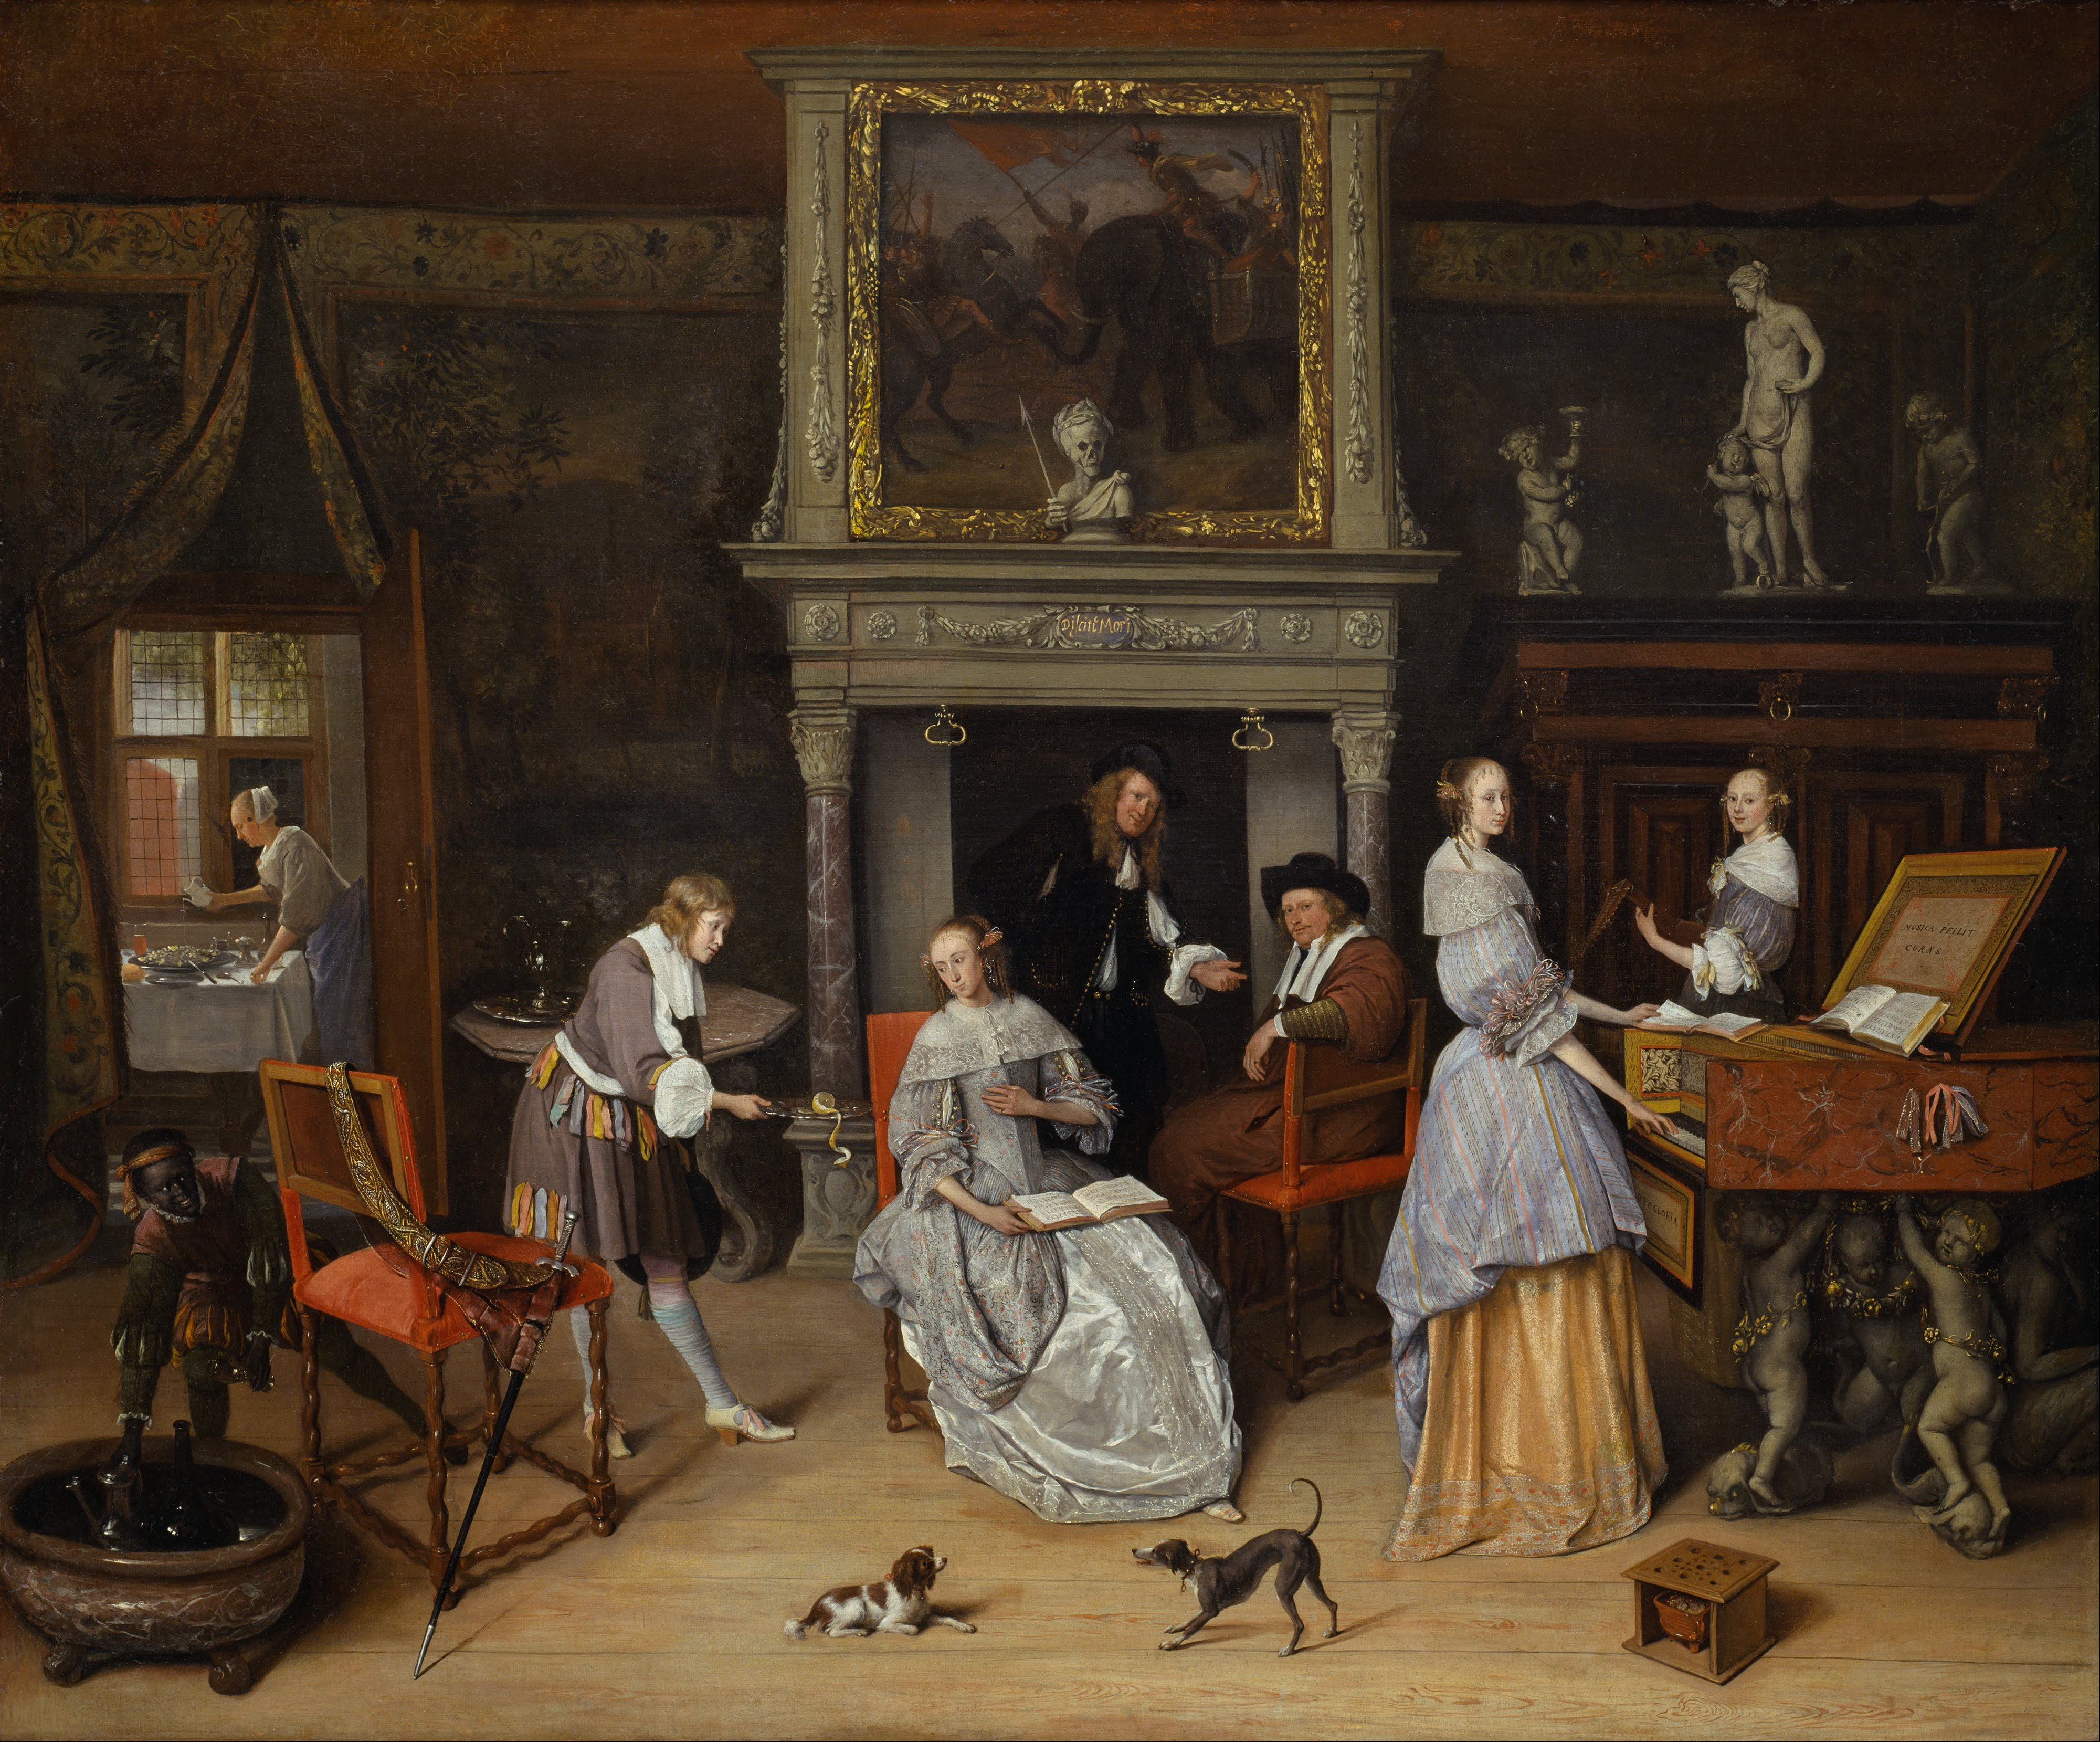 """Jan Steen's """"Fantasy Interior with Jan Steen and the Family of Gerrit Schouten"""" from 1659 or 1660. The painting is owned by Kansas City's Nelson-Atkins Museum of Art."""